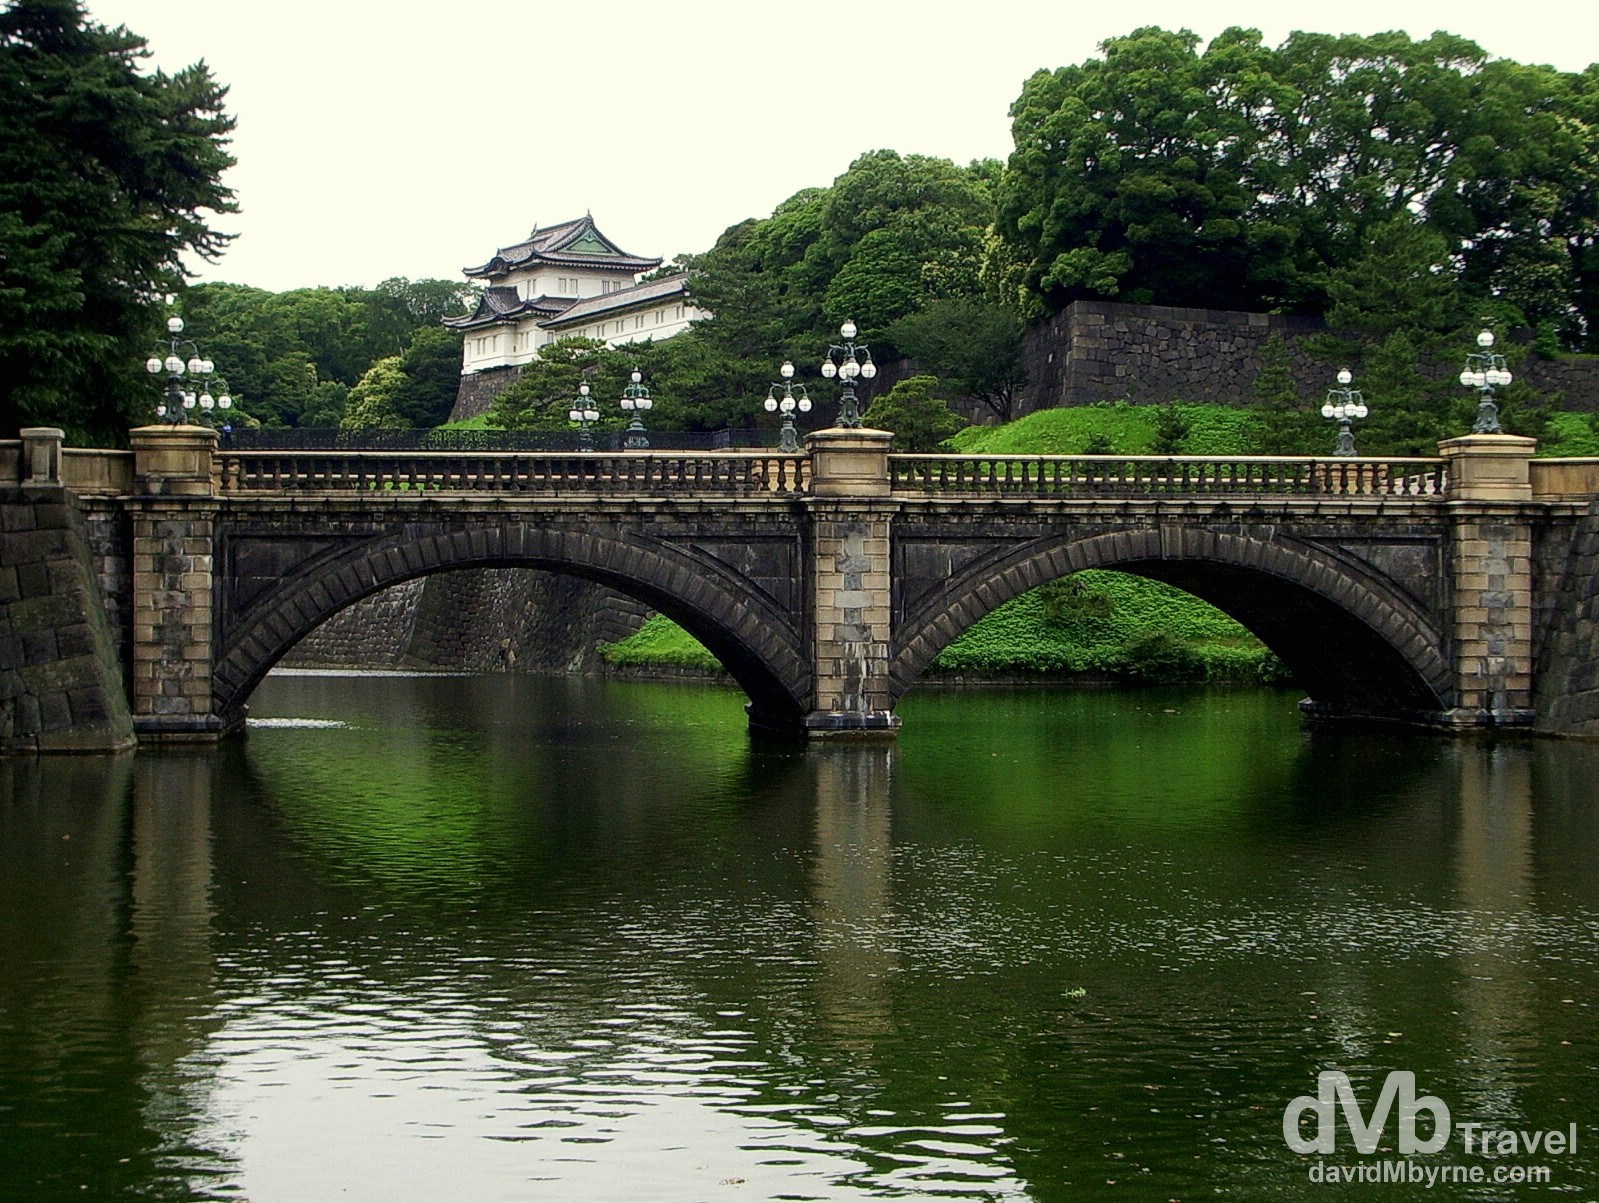 Nijubashi Bridge of the Imperial Palace on an overcast day in Tokyo, Japan. July 13th, 2005.